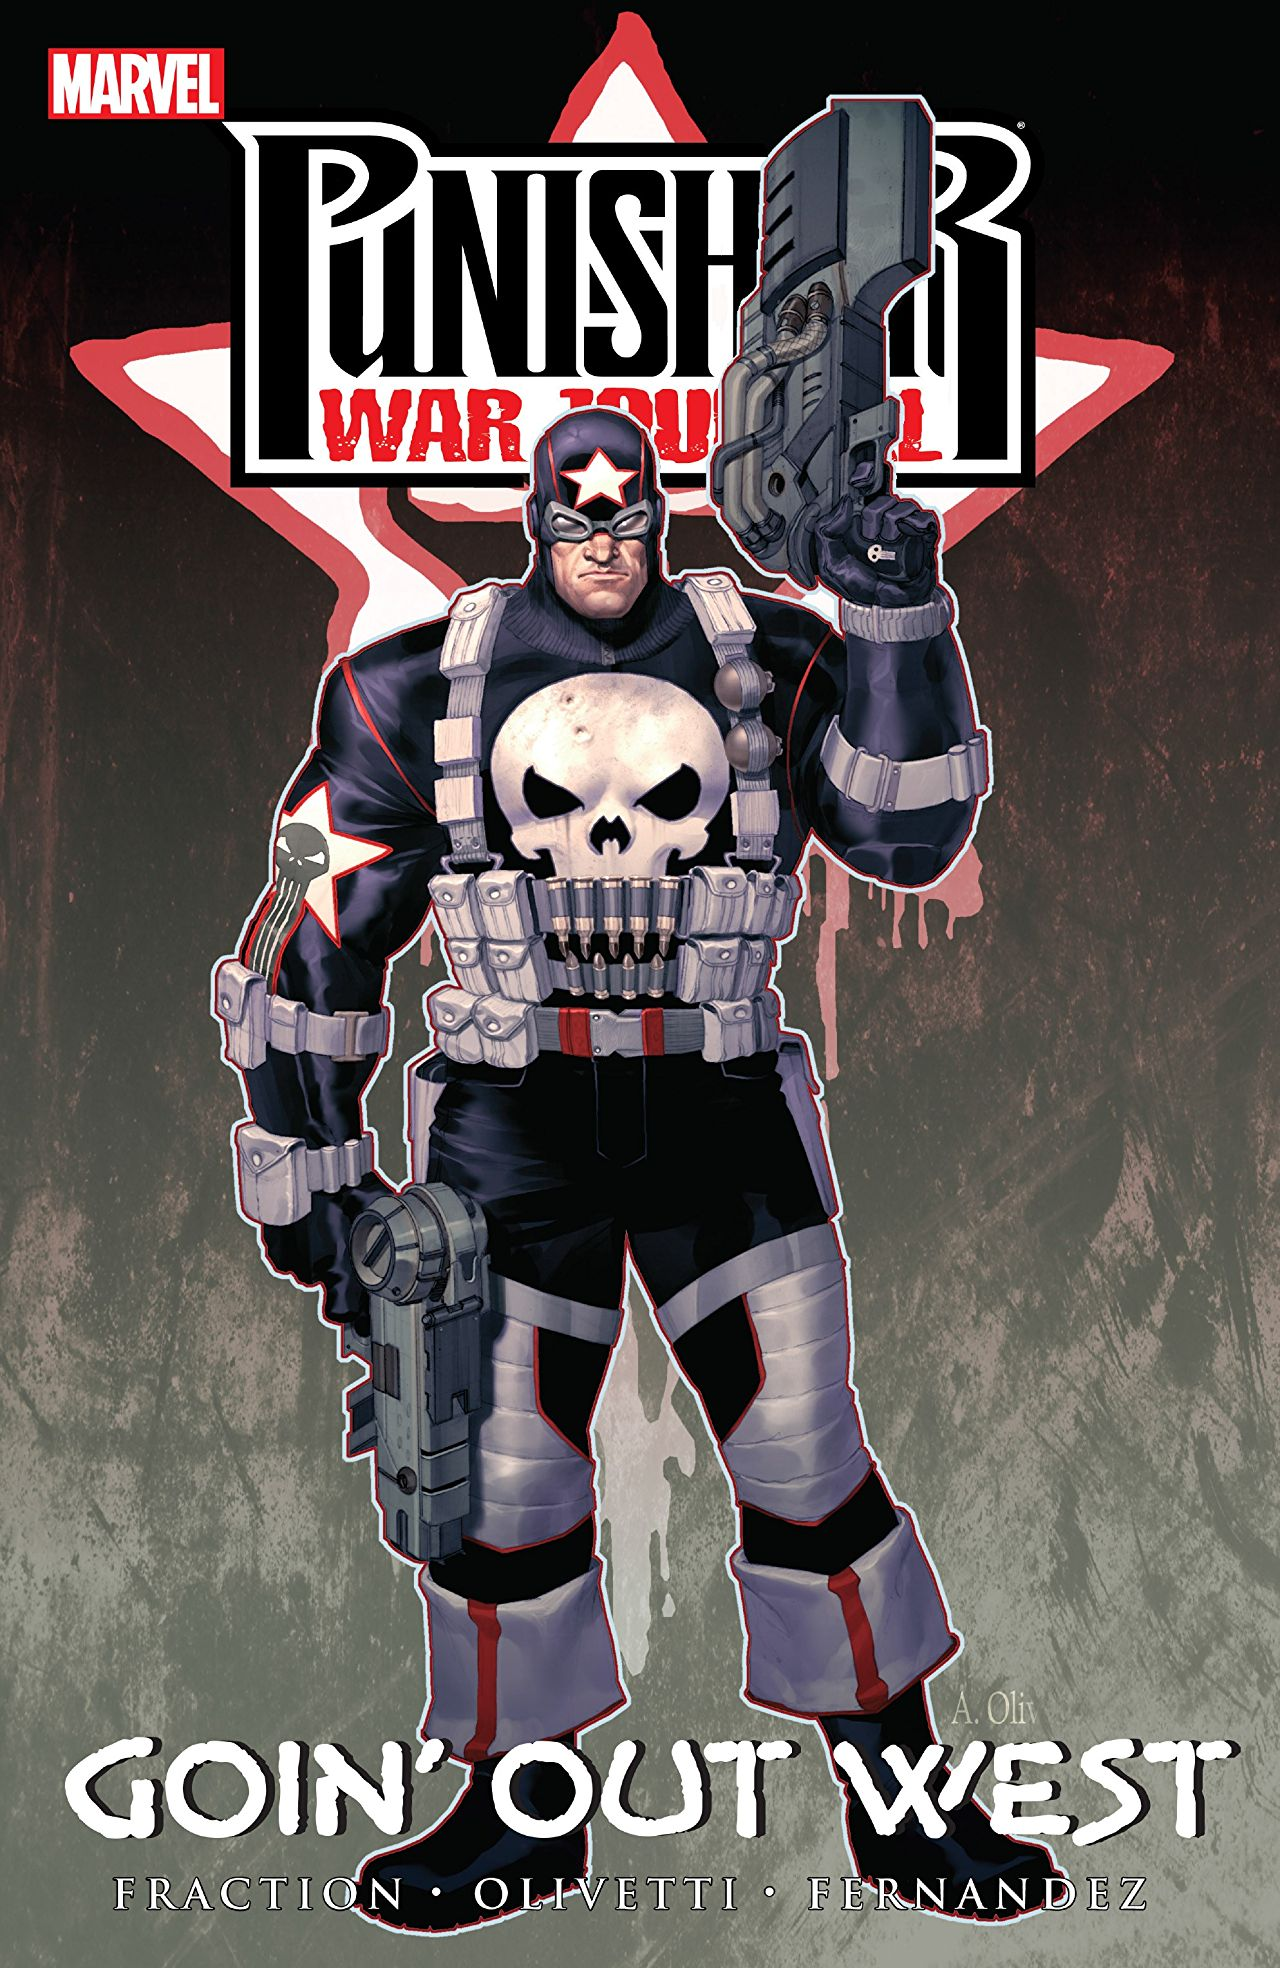 3 Reasons why 'Punisher War Journal by Matt Fraction: The Complete Collection Vol. 1' would make for a great movie